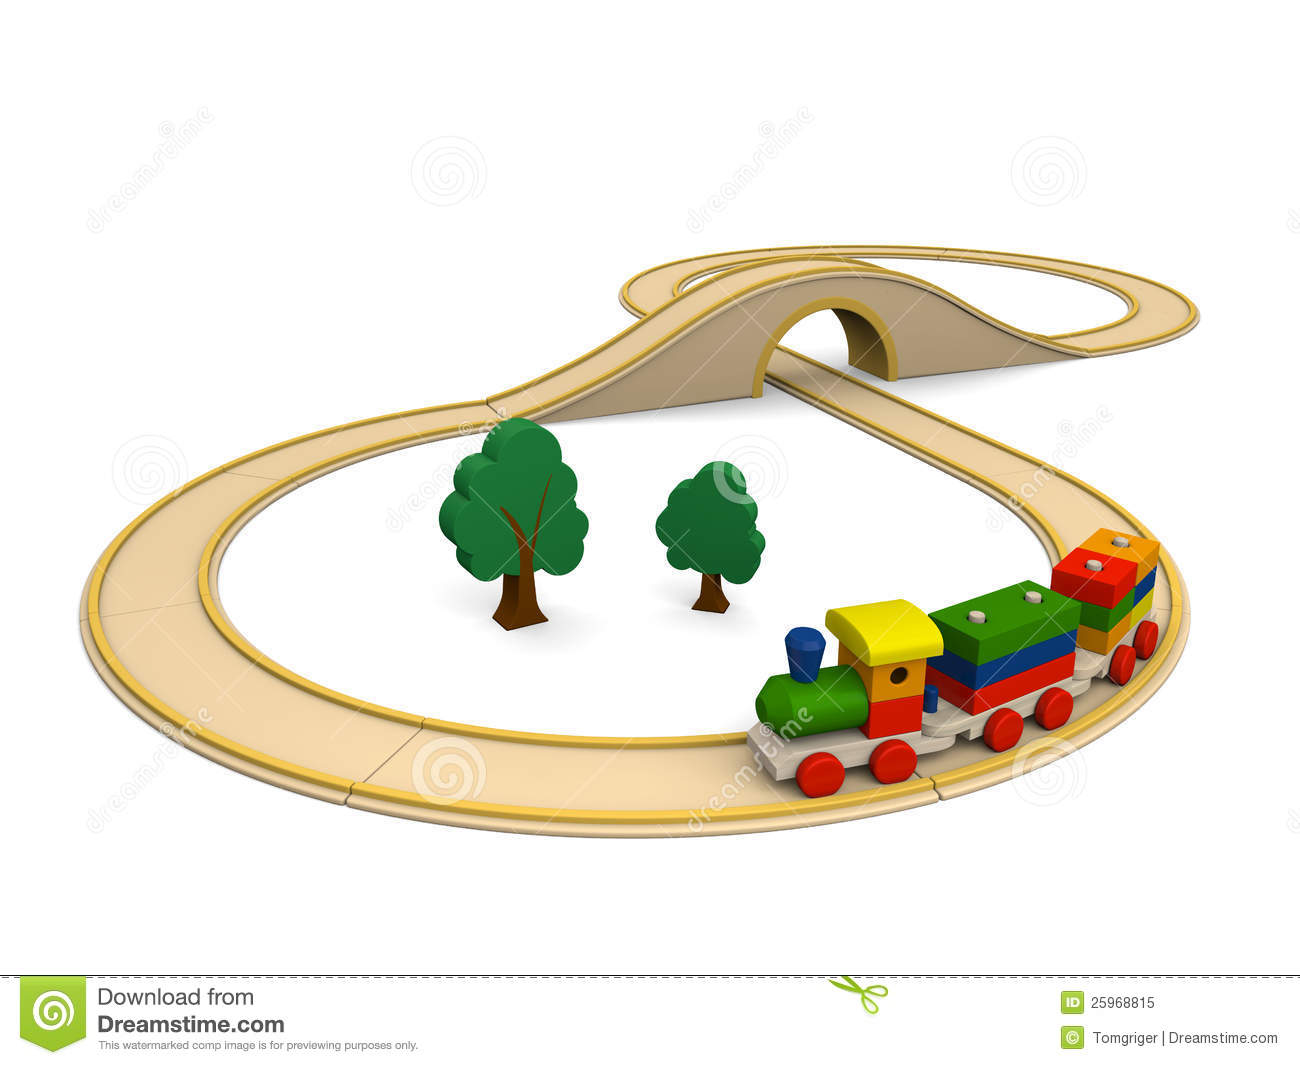 Wooden Train Tracks Woodworking Plans Wood Train